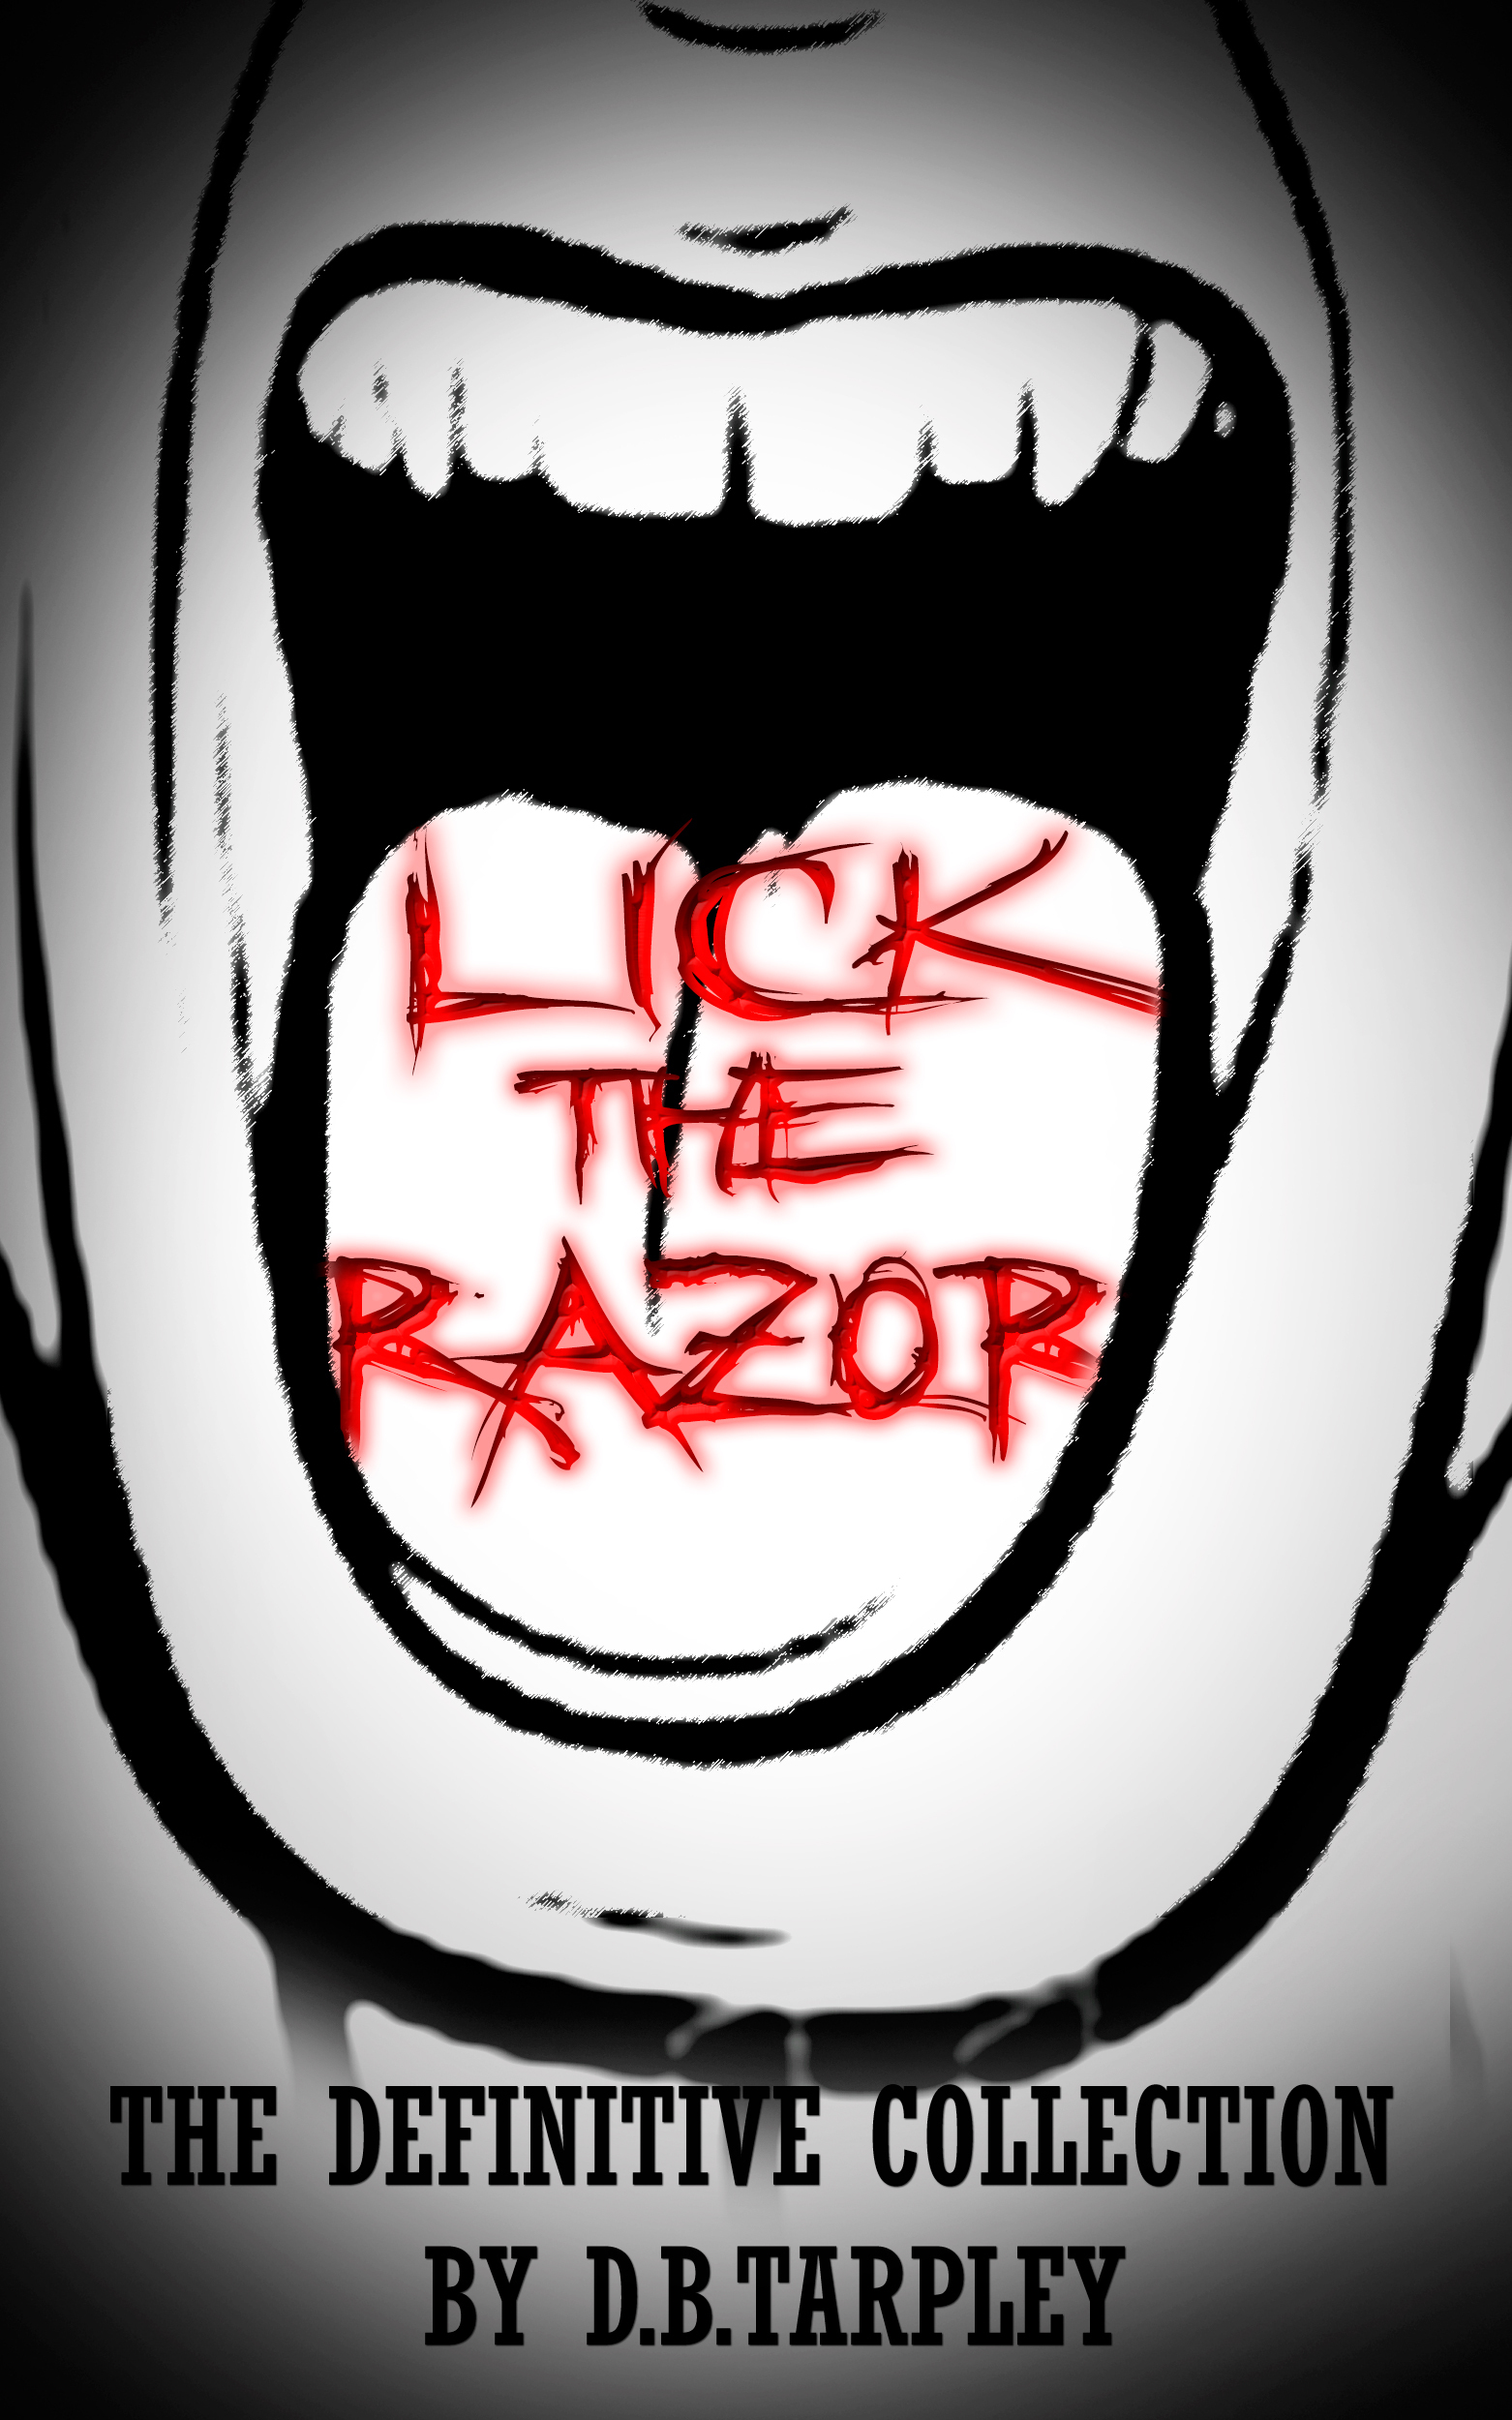 Lick the Razor: The Definitive Collection  by  D.B.Tarpley